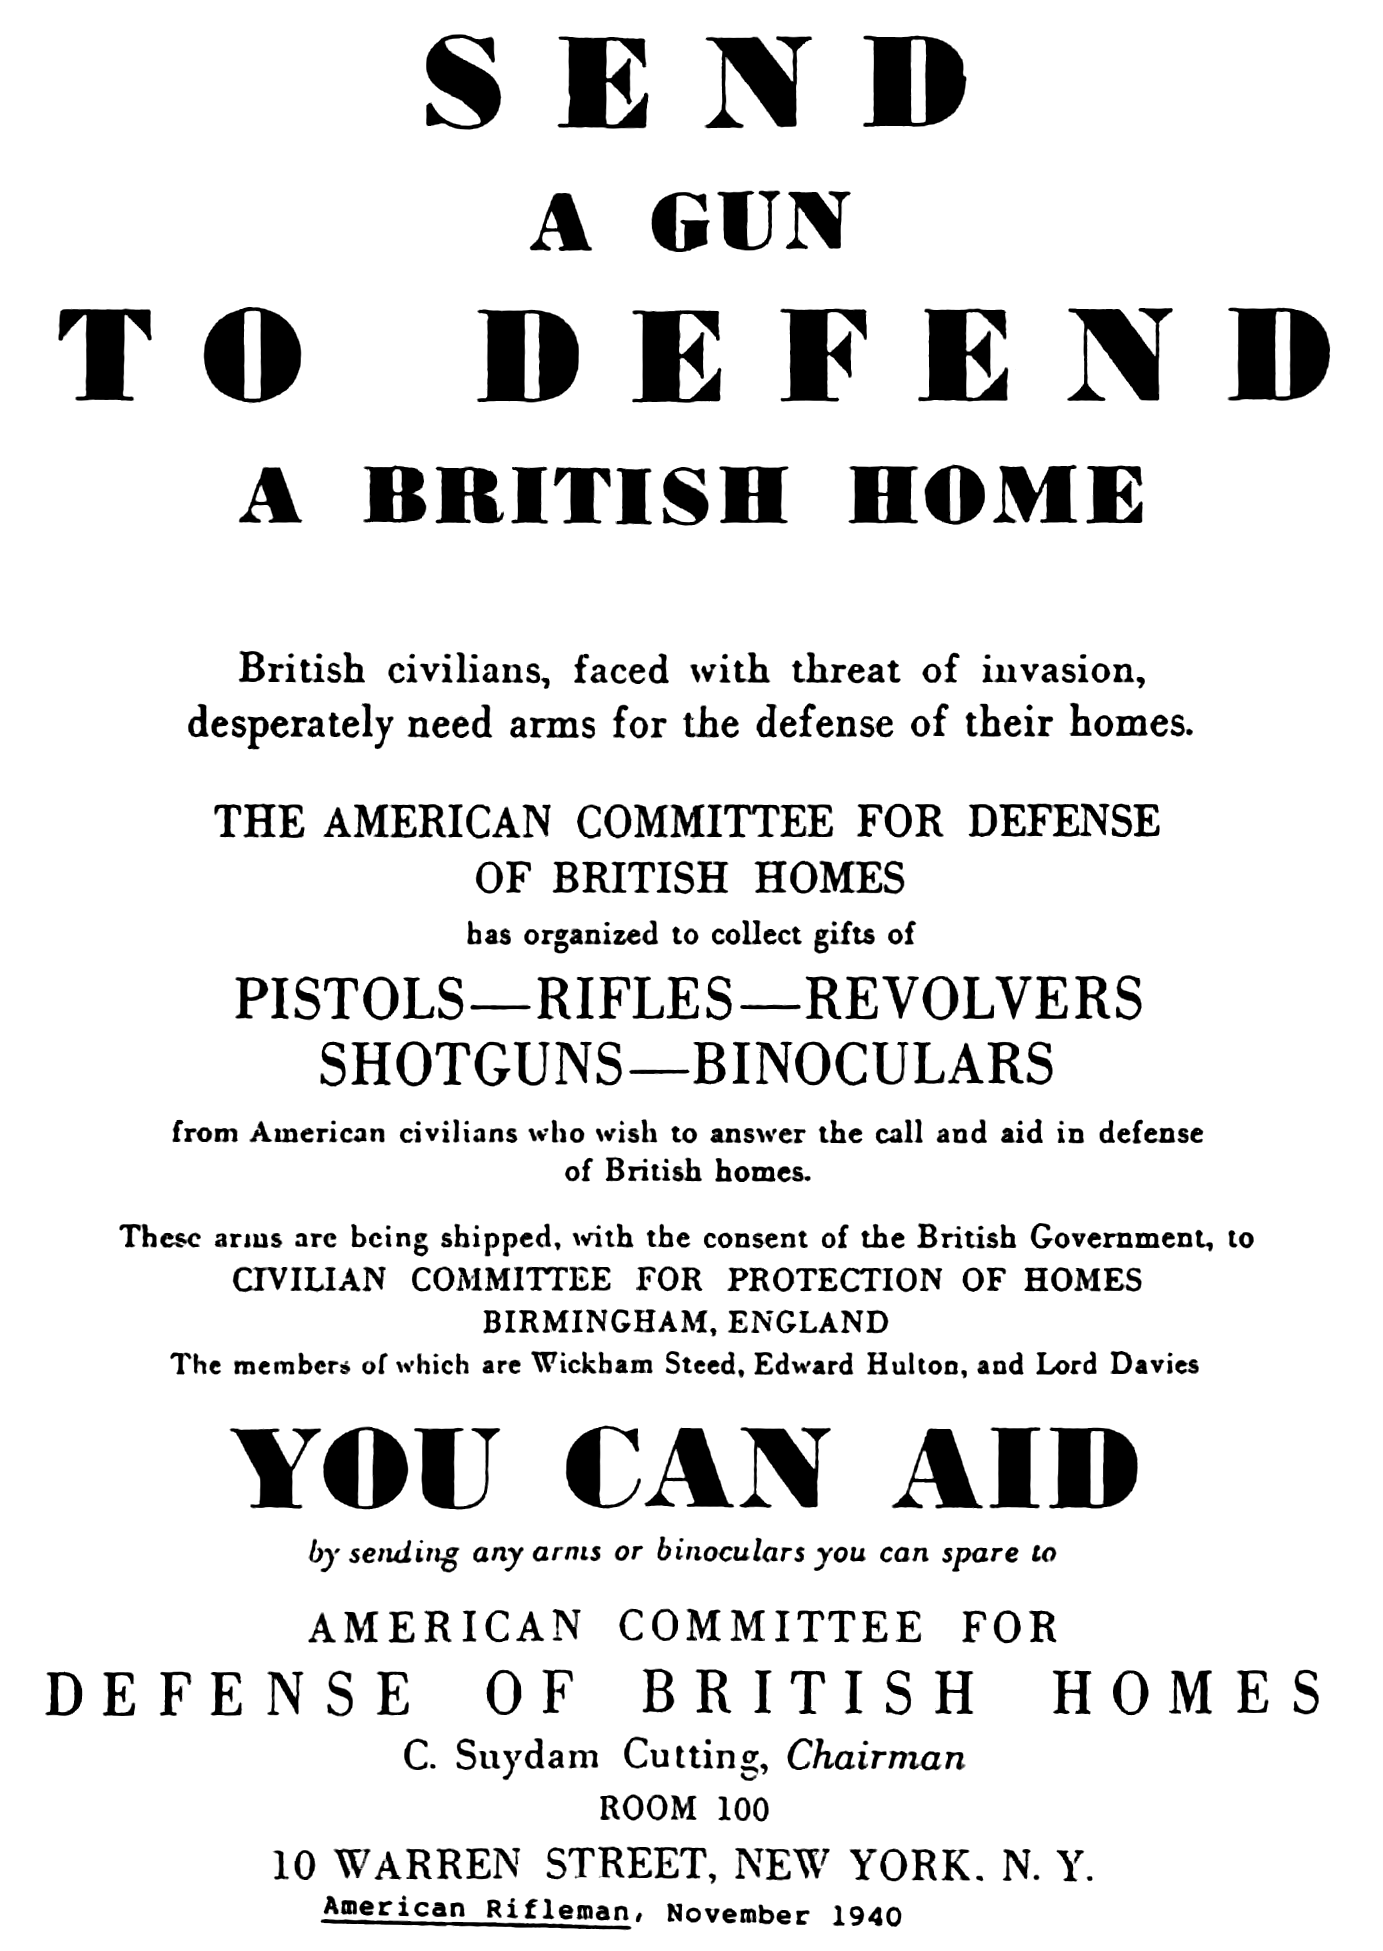 https://upload.wikimedia.org/wikipedia/commons/f/f5/Send_a_gun_to_defend_poster.png